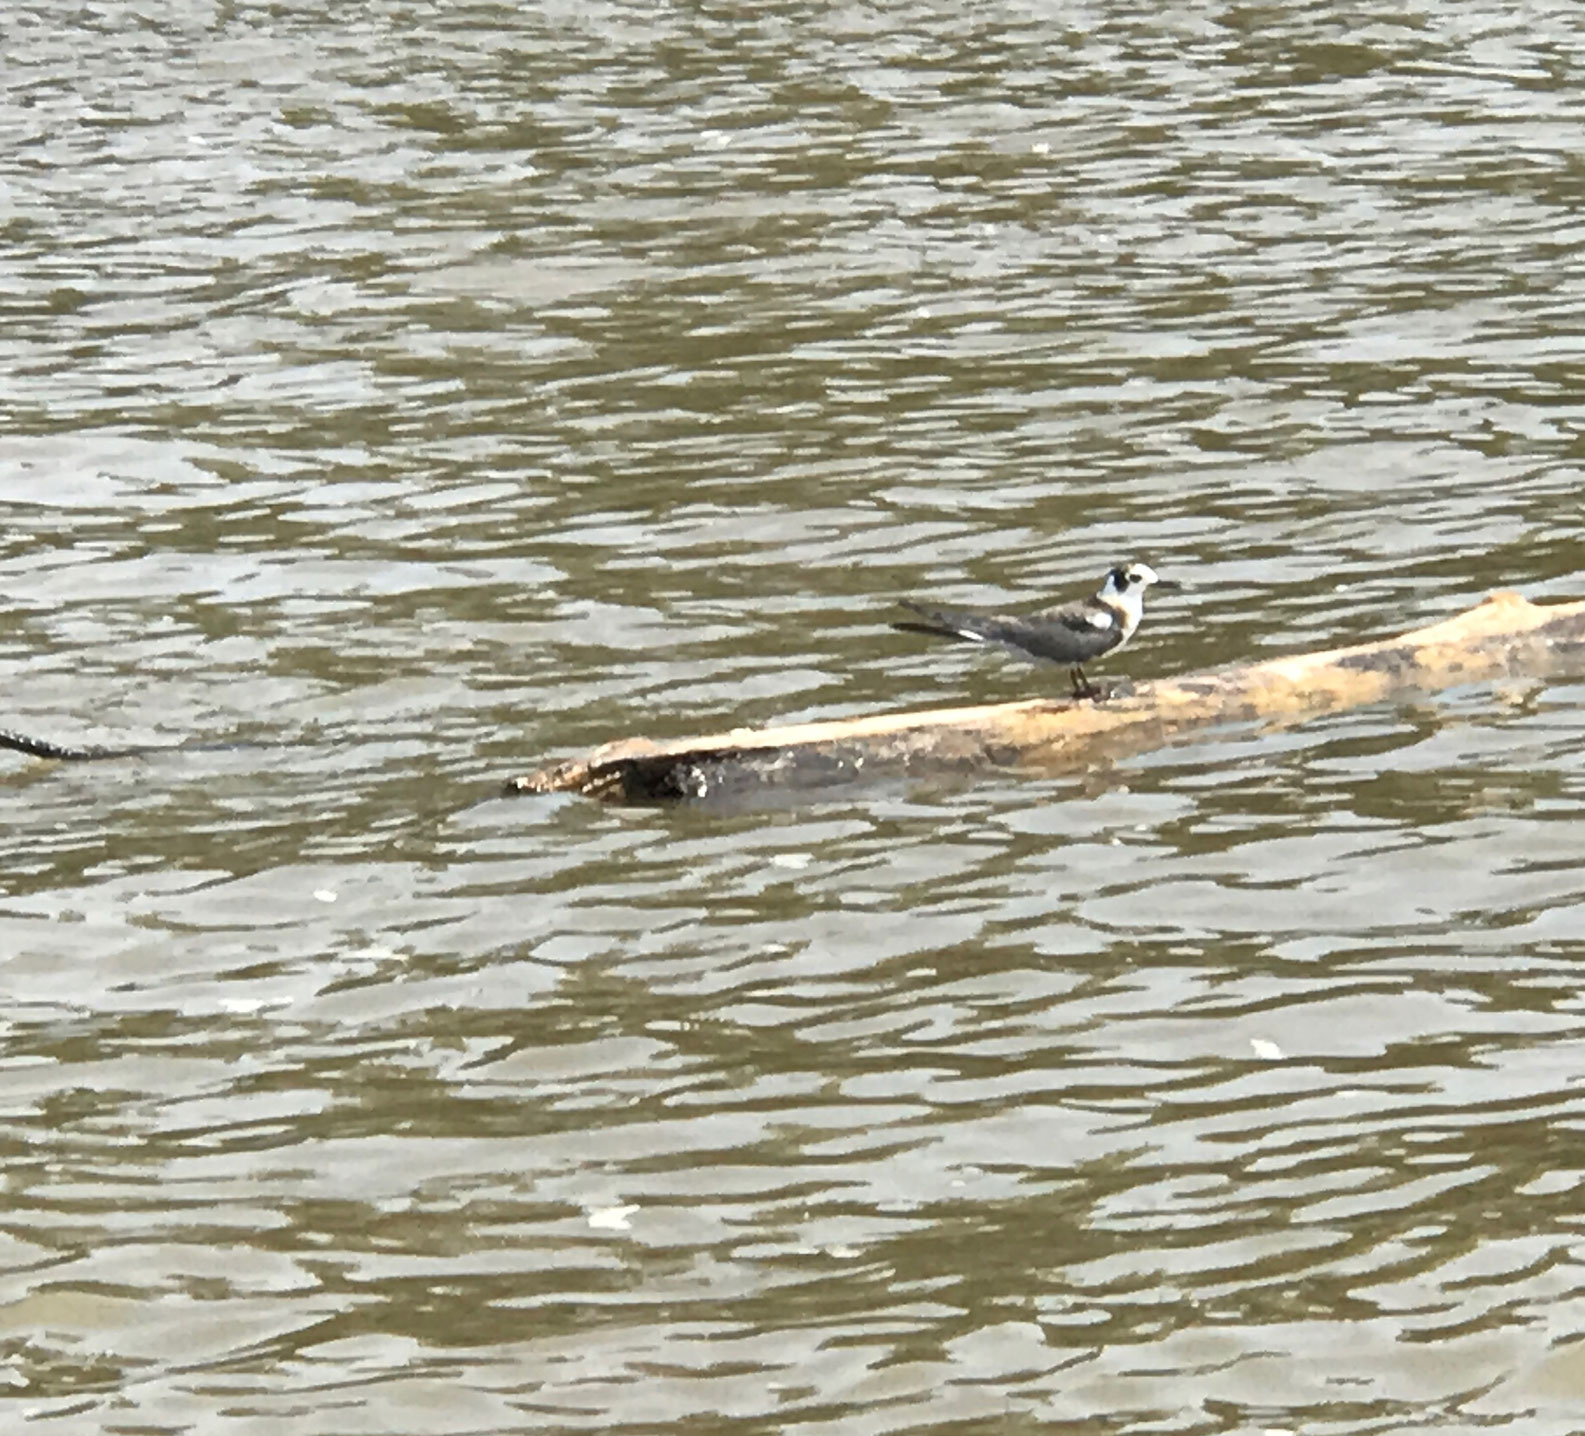 A bird sitting on a piece of drift wood in the Mississippi River